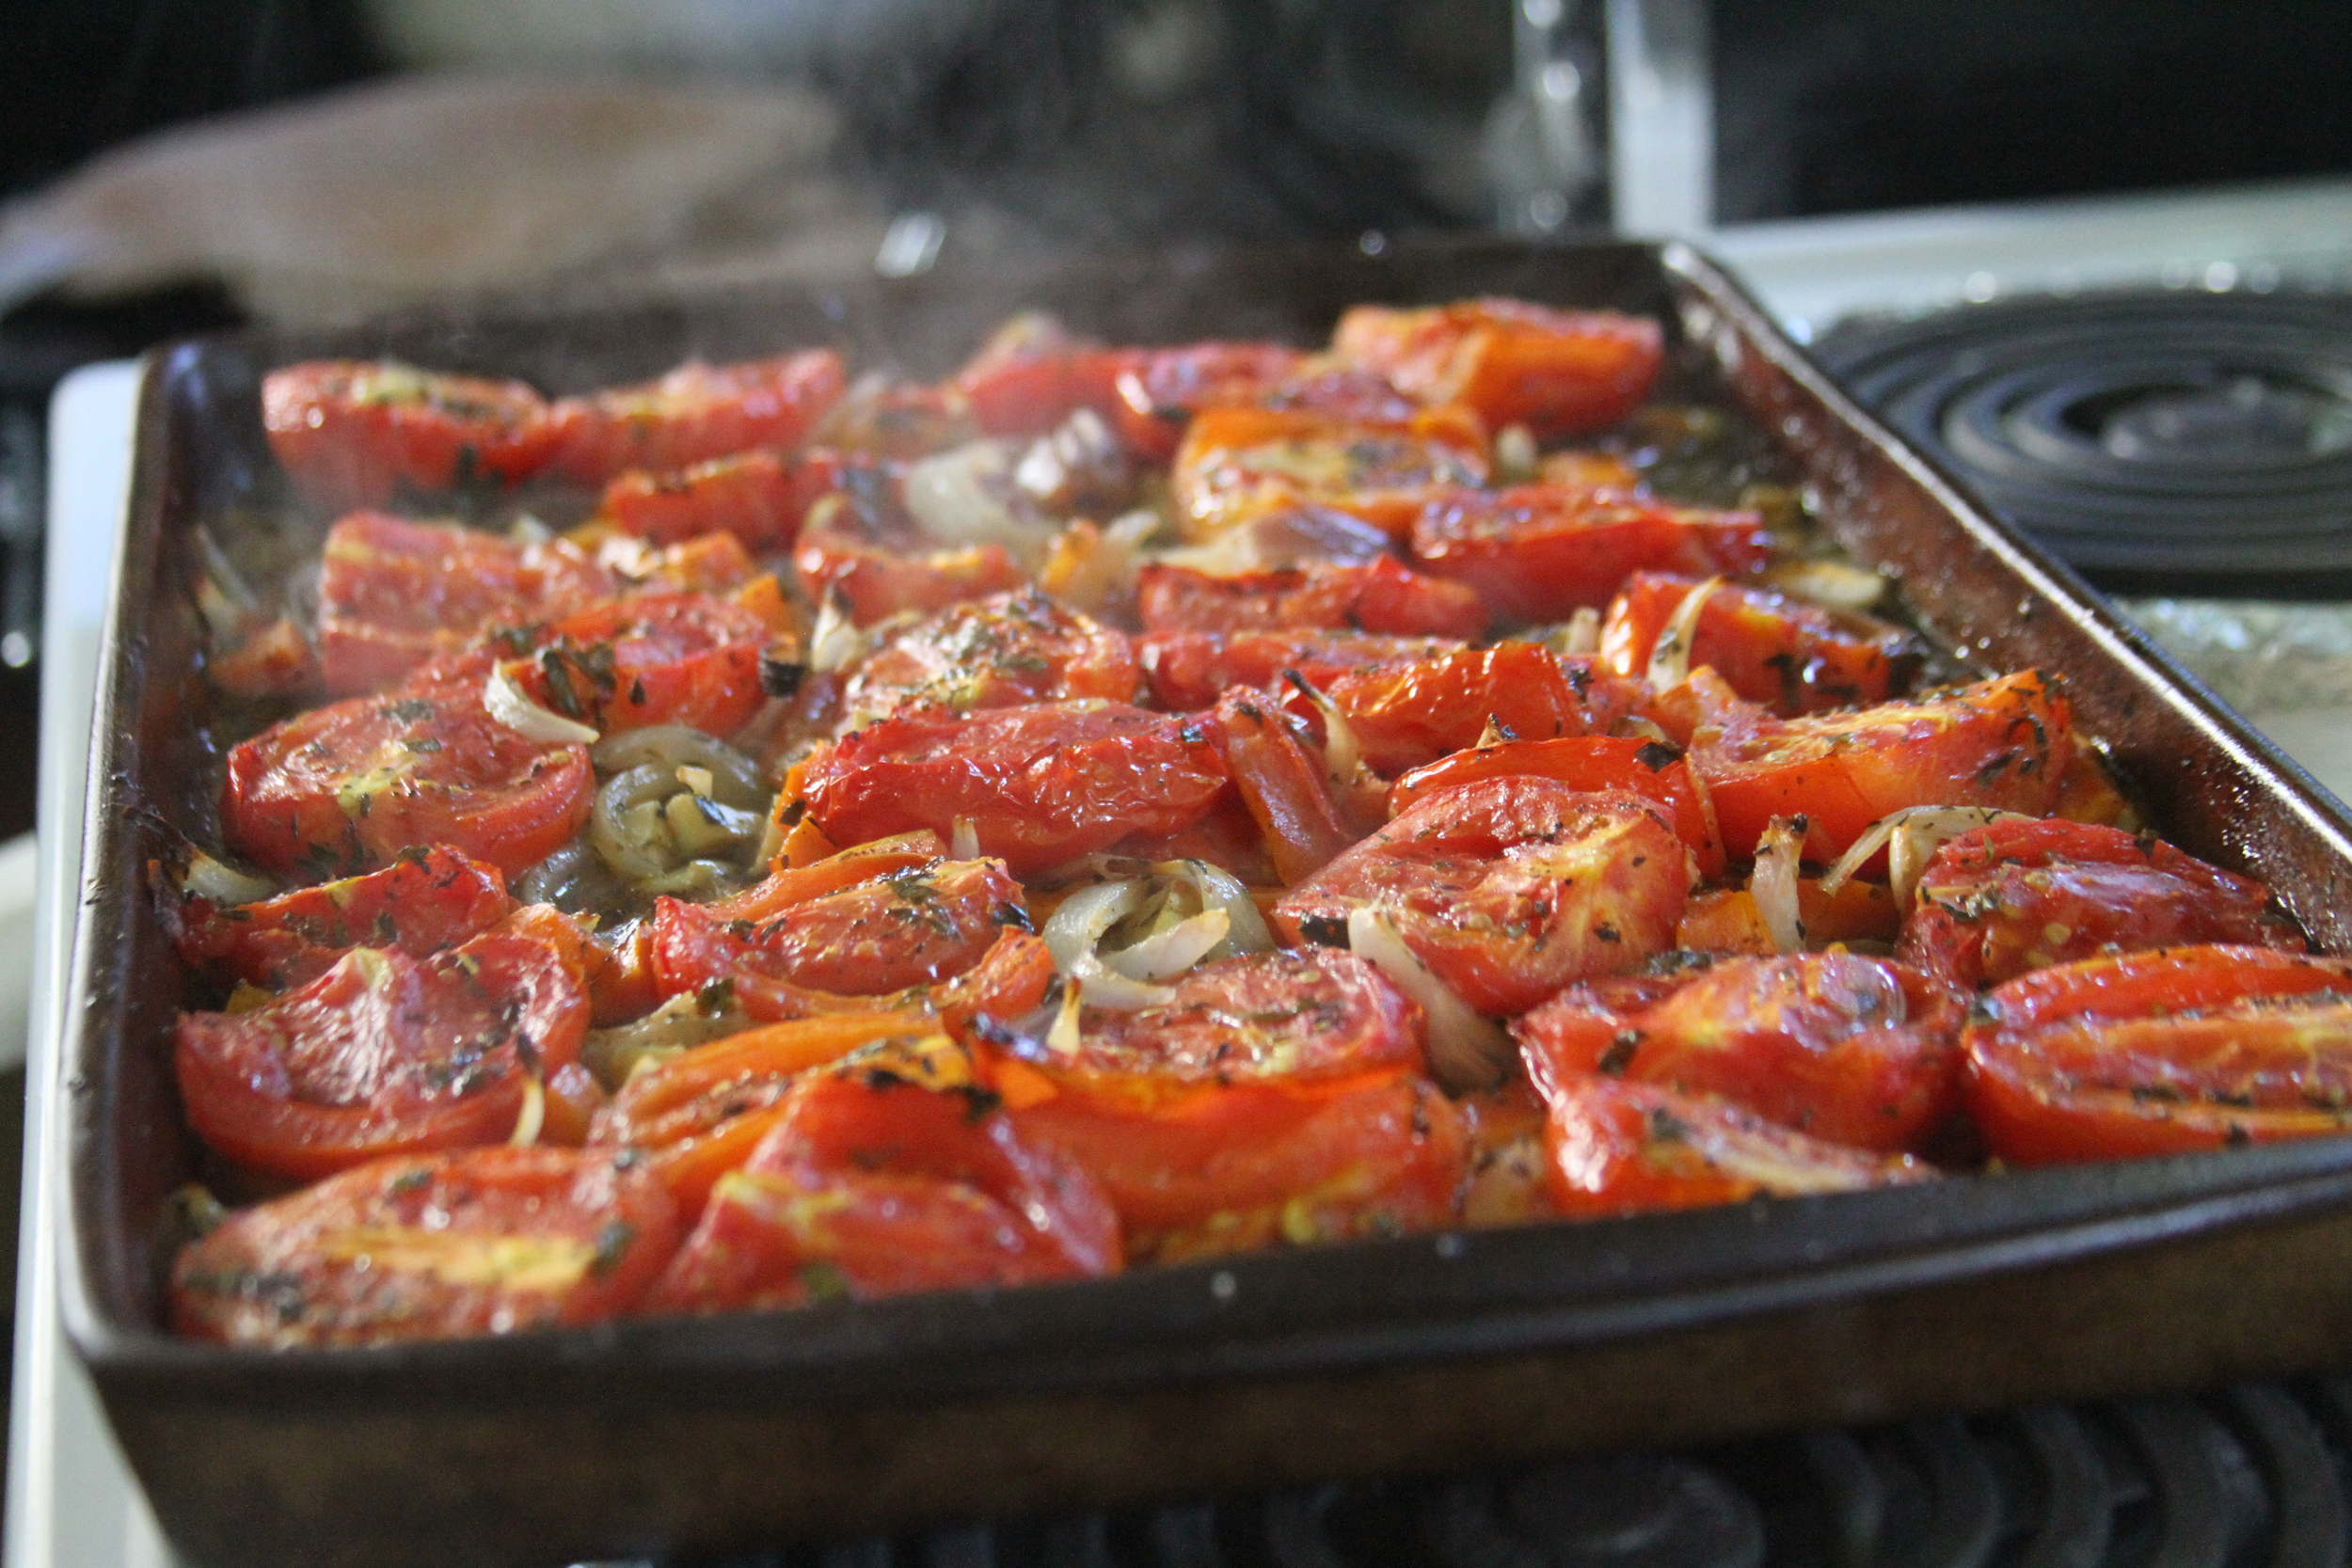 Roasted tomatoes, onions and garlic.